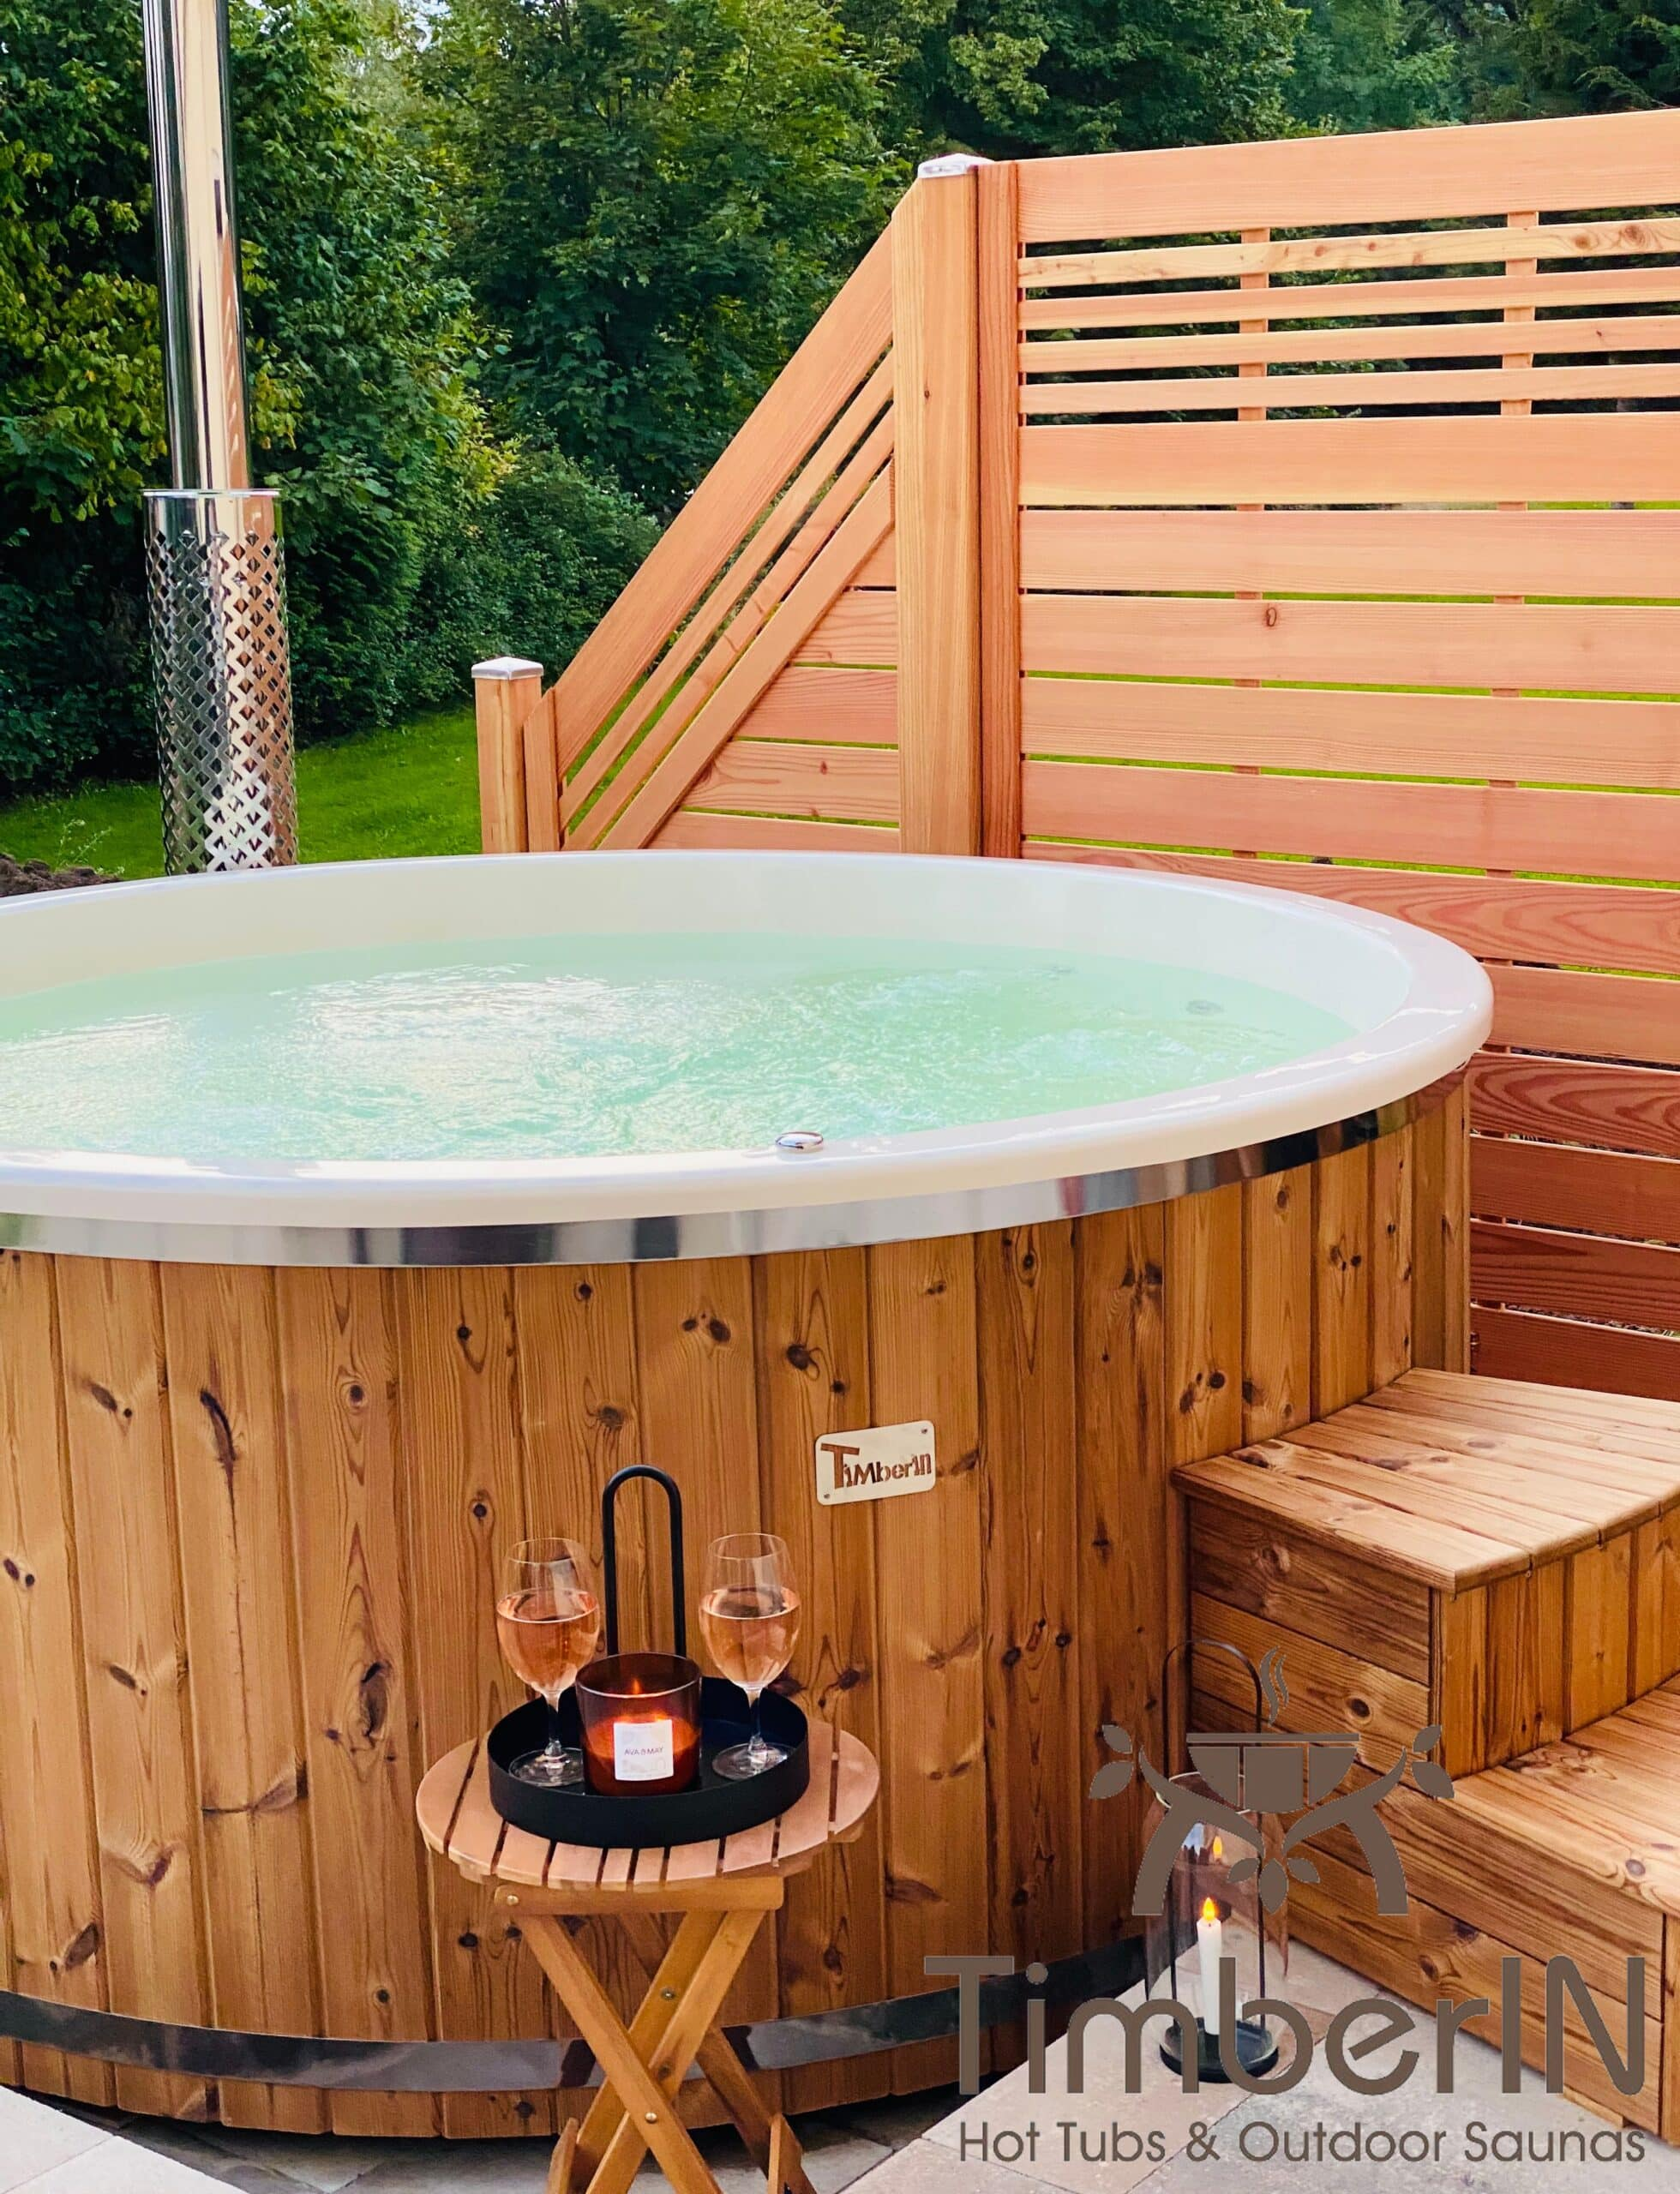 Badezuber Badefass Hot Tube mit Whirlpool Holzofen – TimberIN Rojal 2 2 scaled